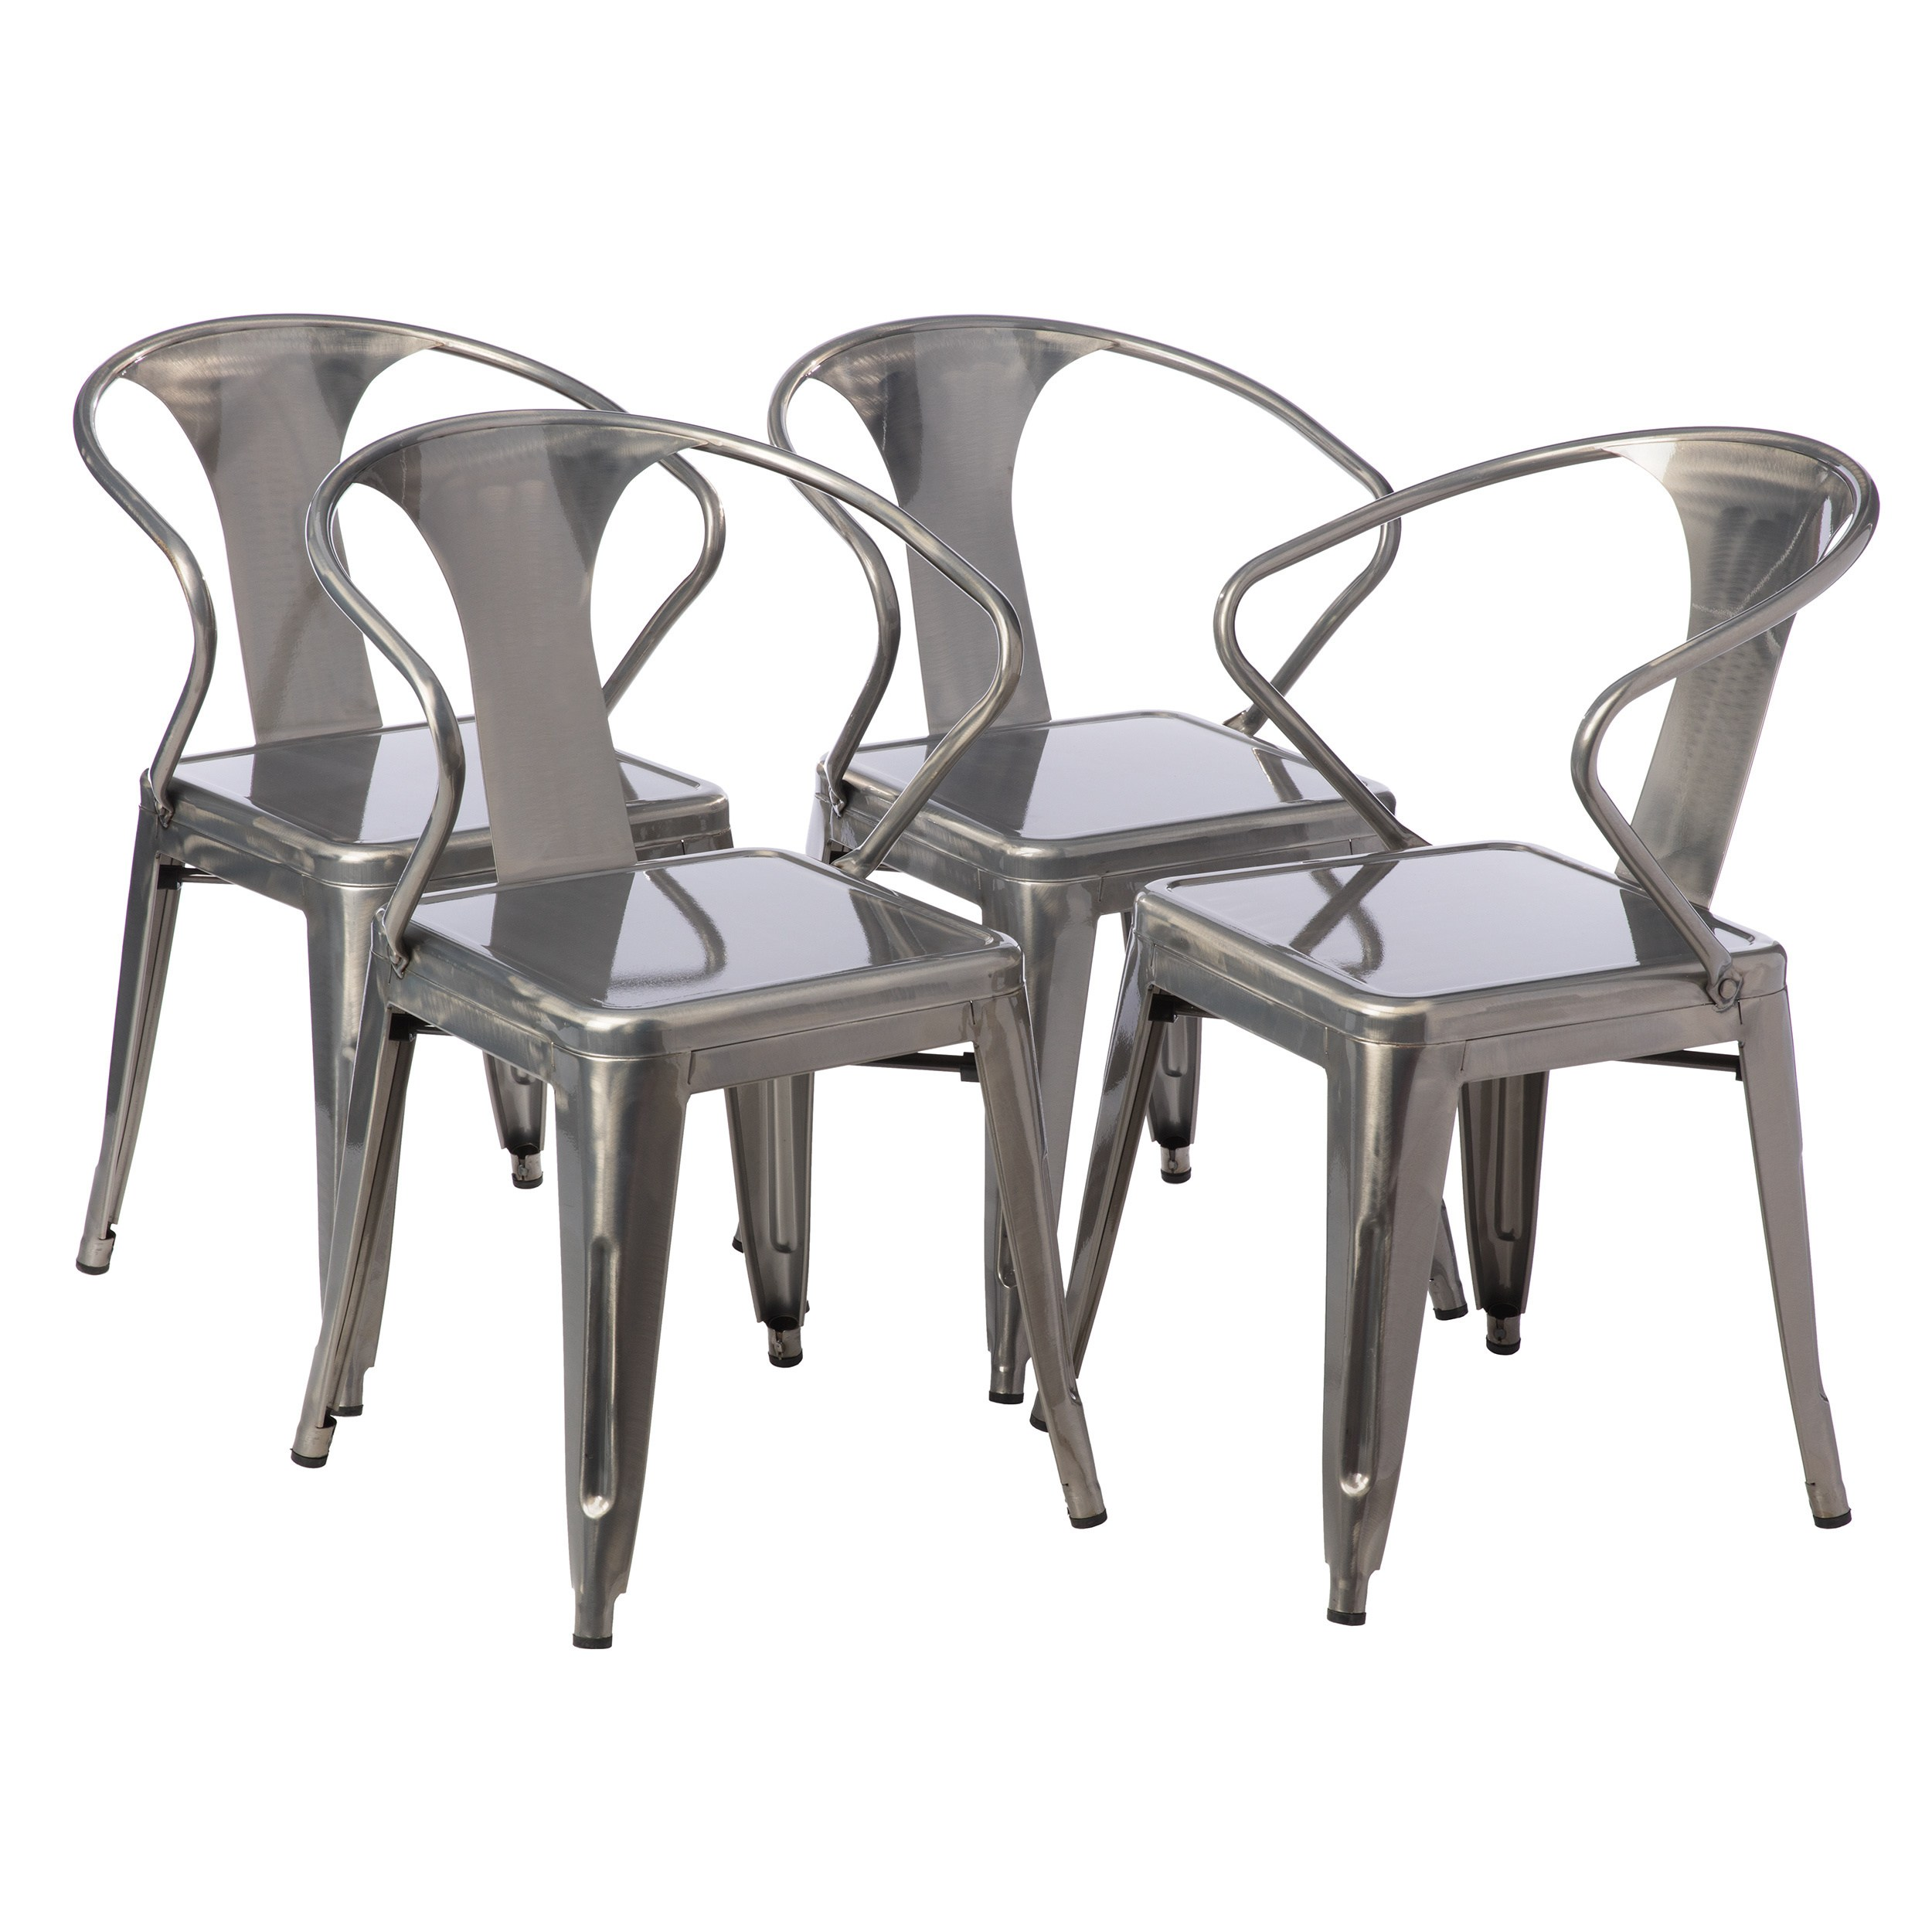 Tabourets Walmart Tabouret Gunmetal Stacking Chair Set Of 4 Walmart